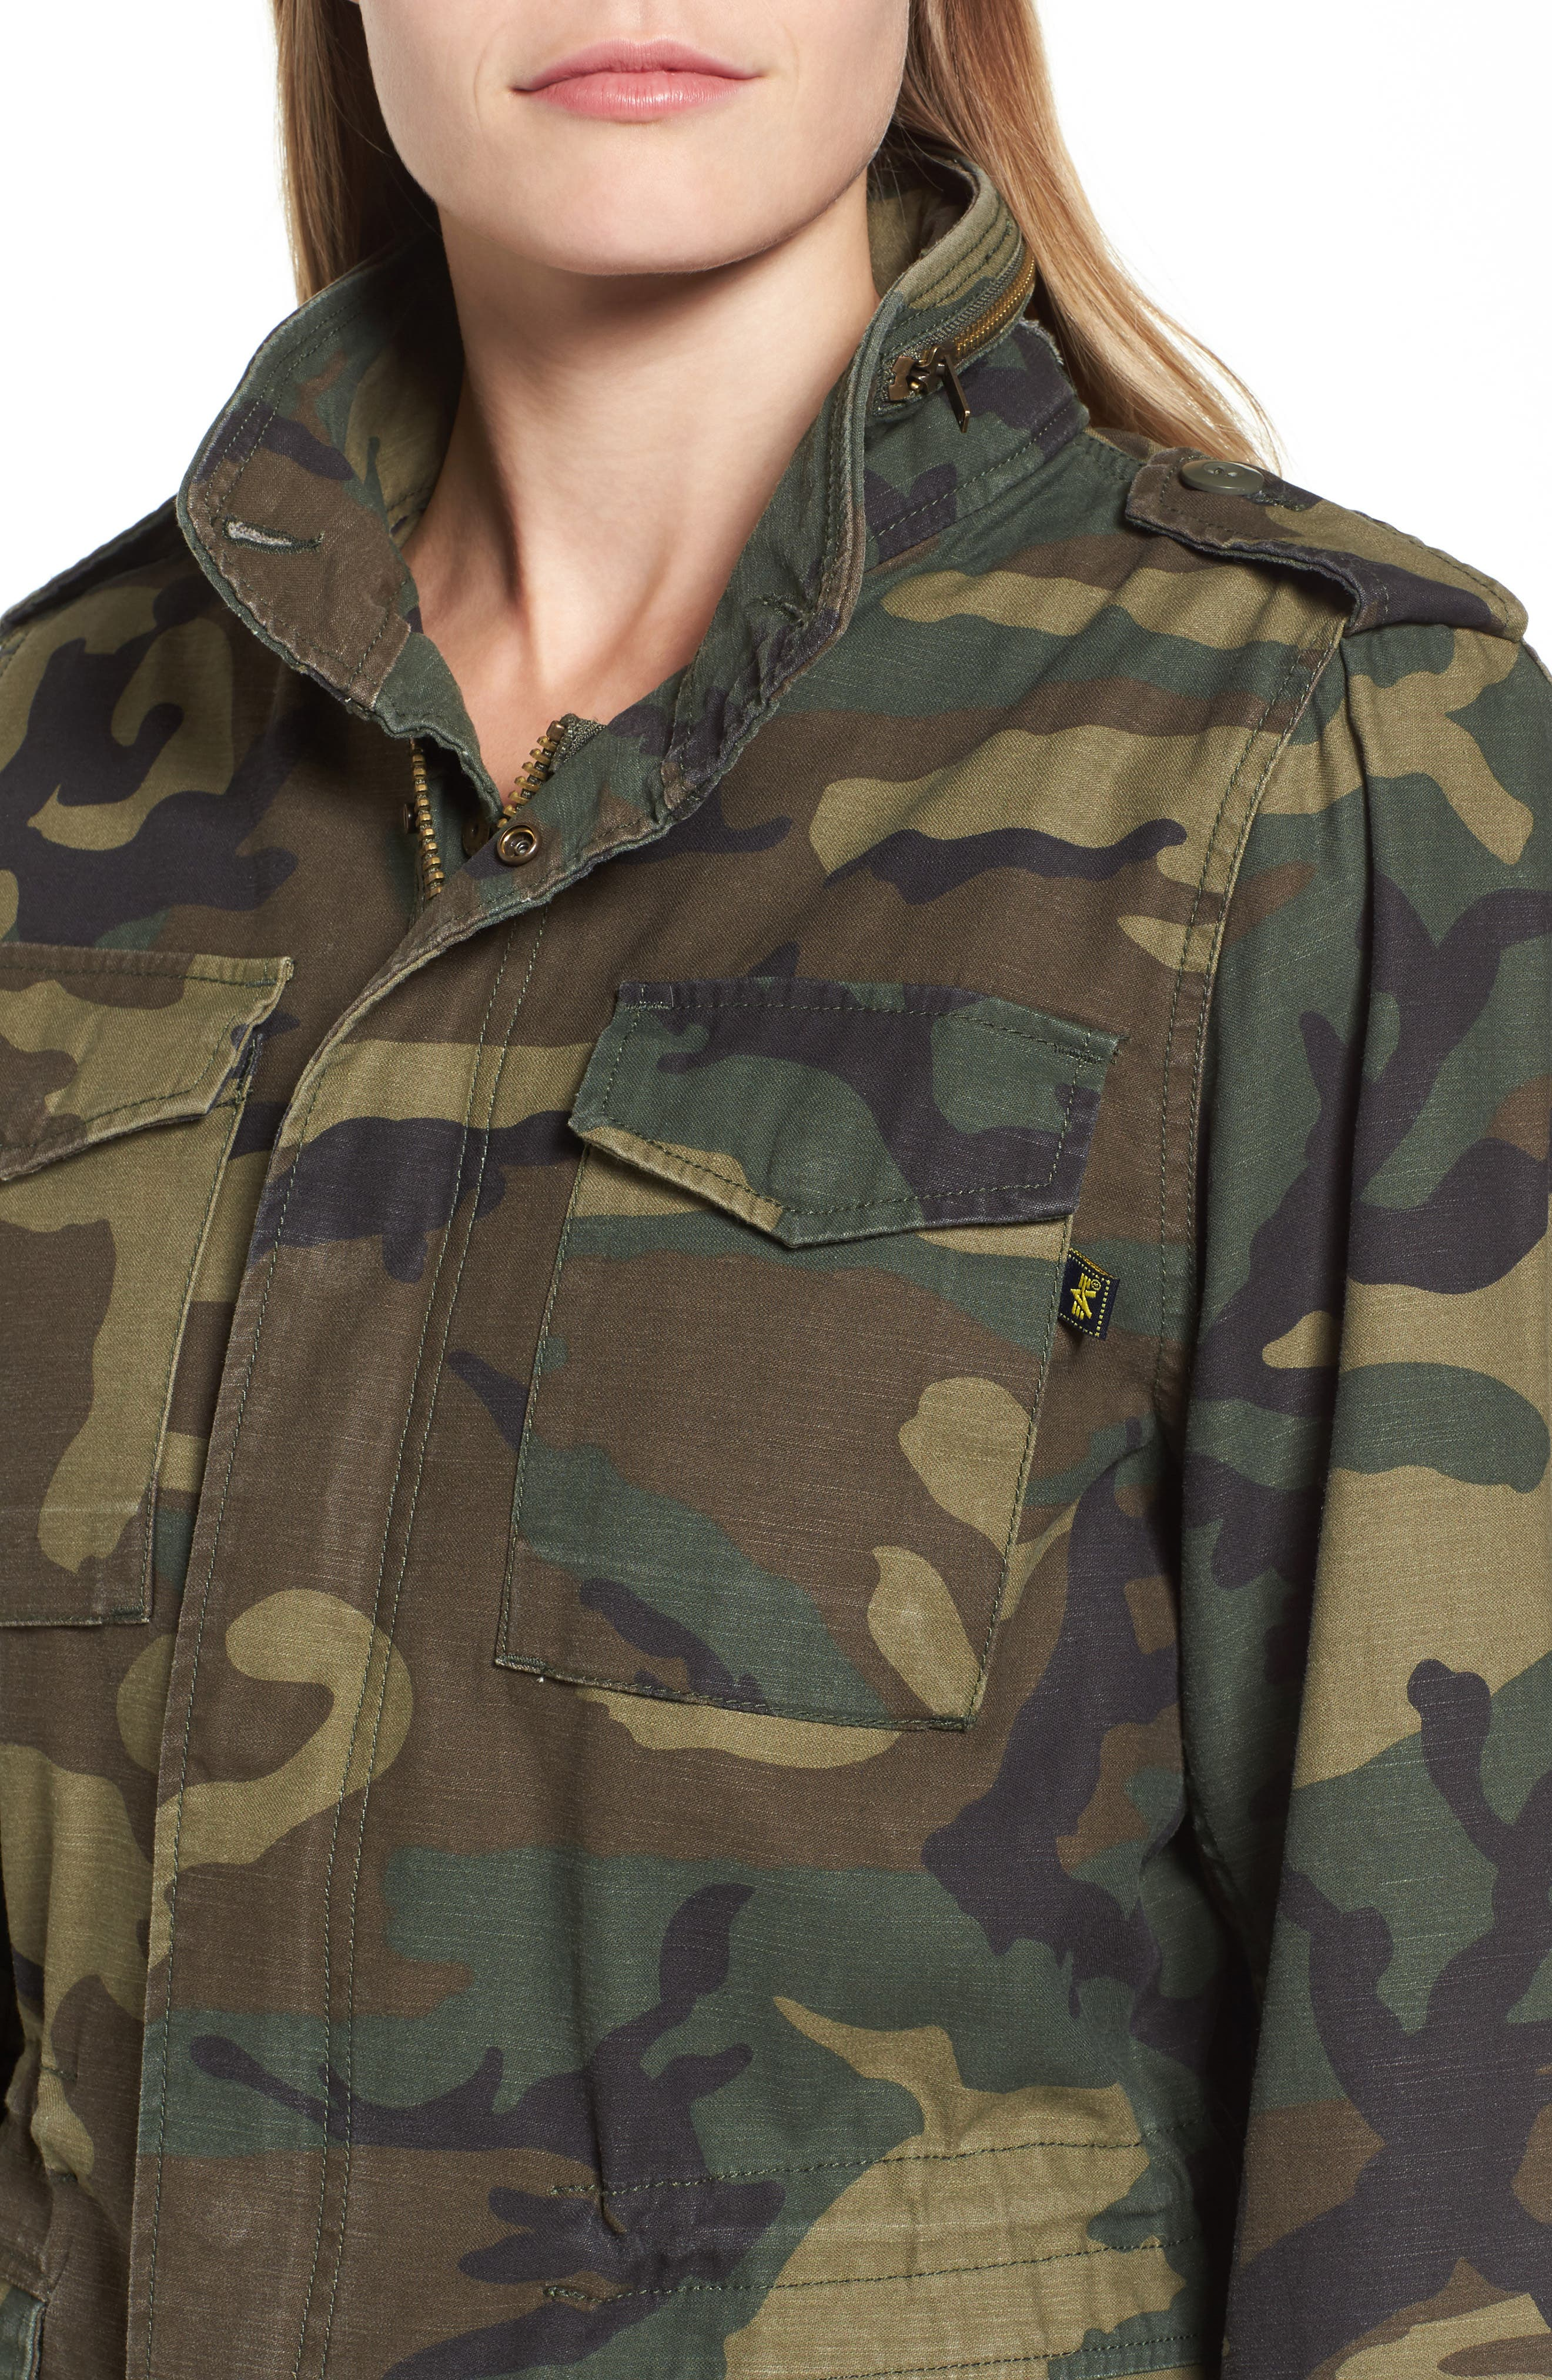 M-65 Defender Camo Field Jacket,                             Alternate thumbnail 4, color,                             WOODLAND CAMO